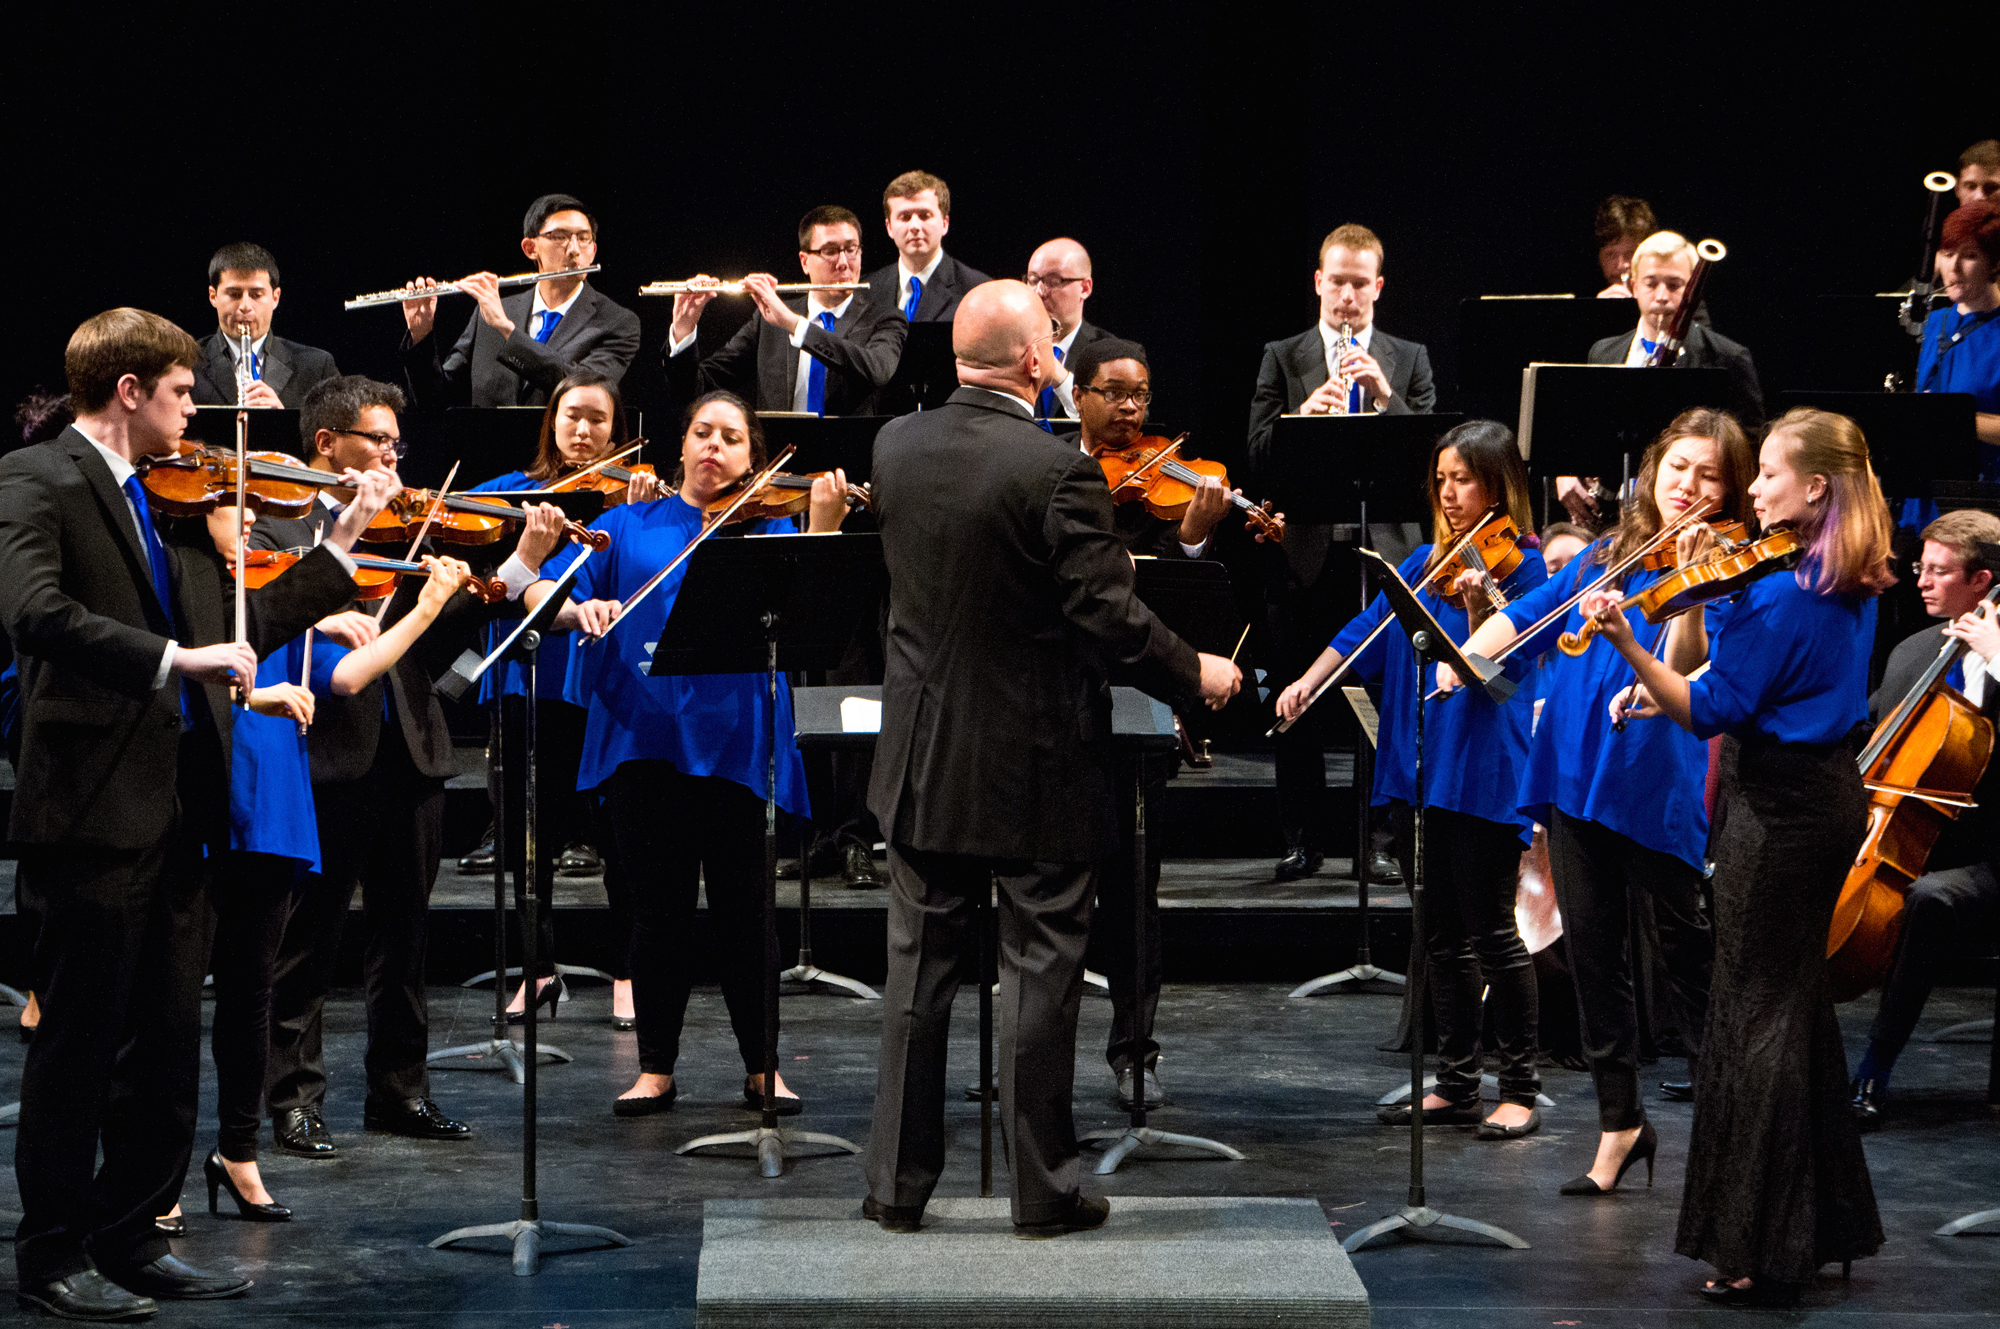 Leon-Botstein conducts The Orchestra Now (Credit: Jito Lee)